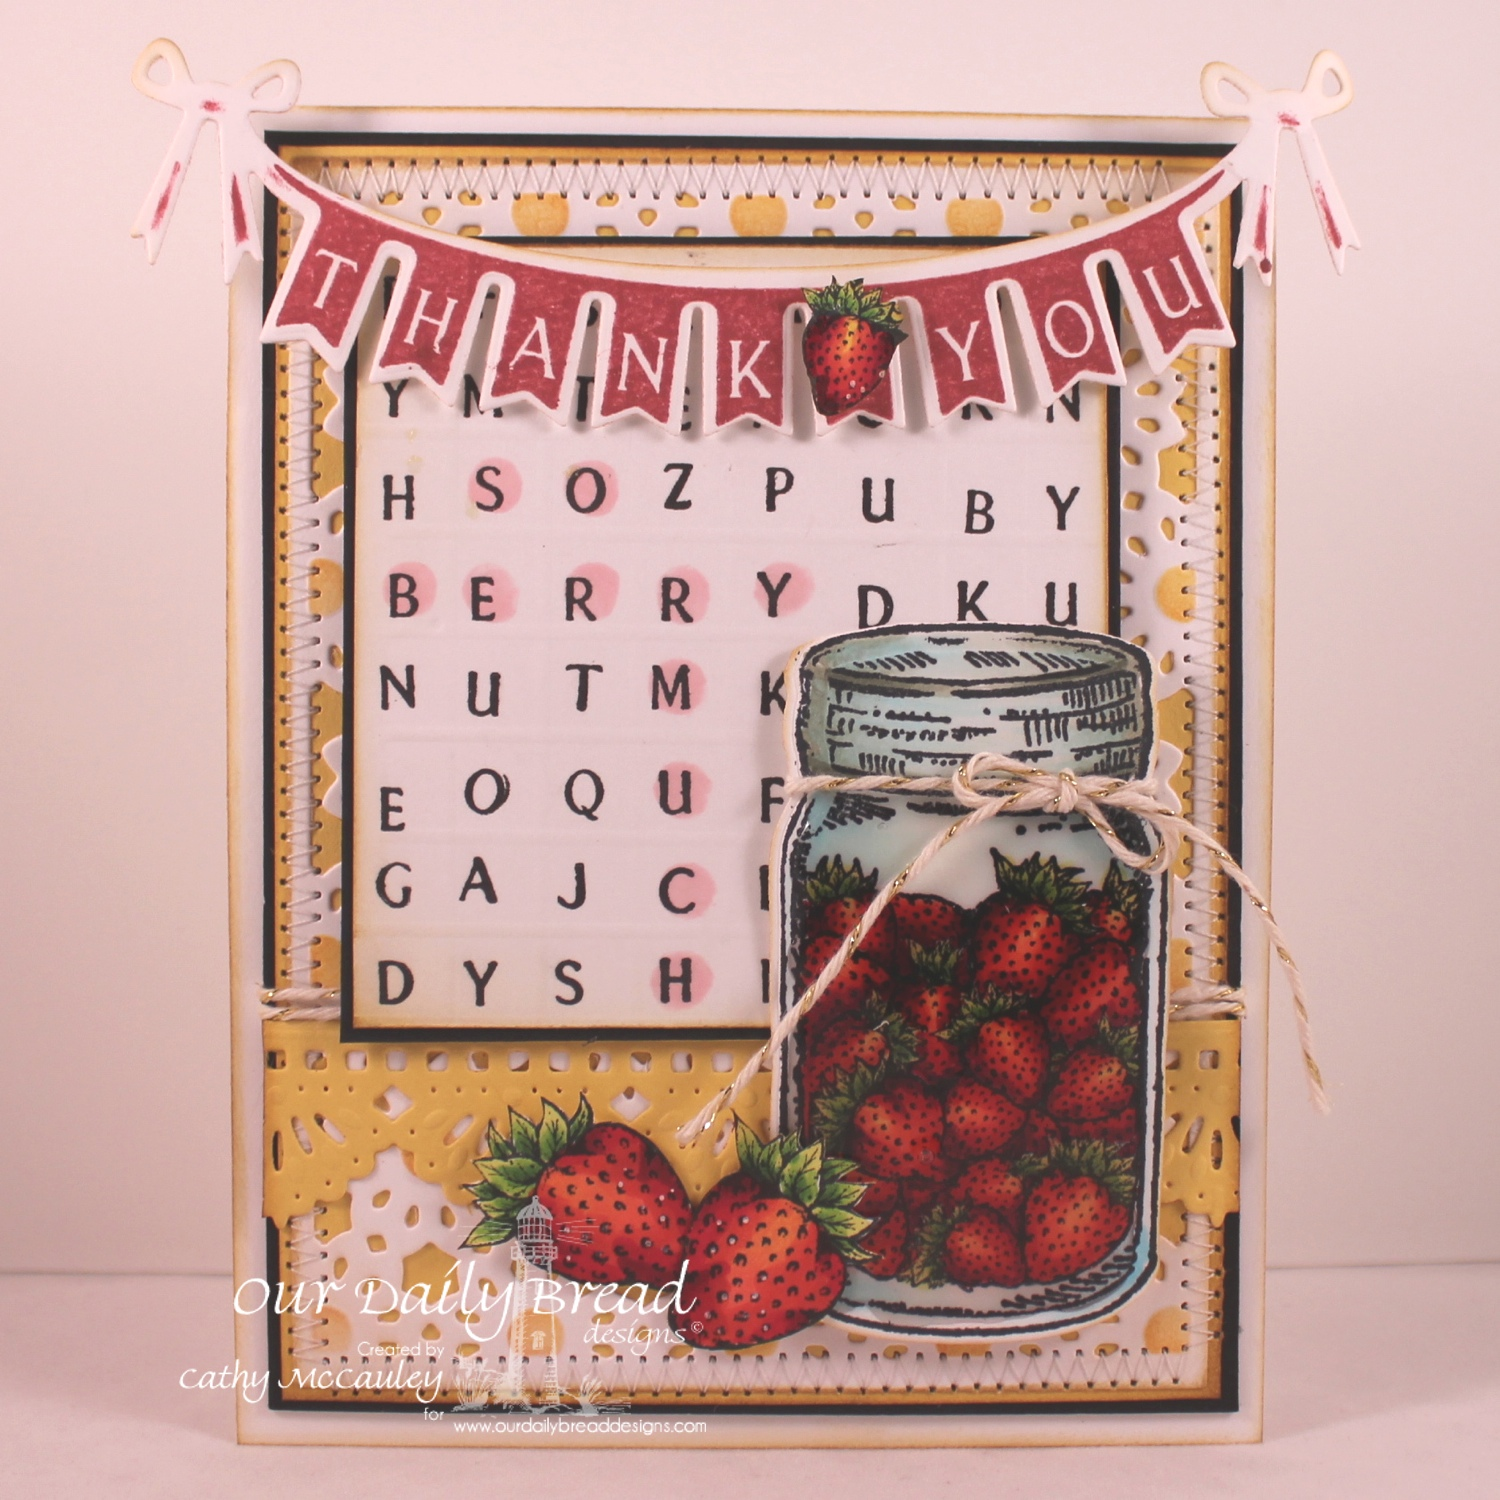 Stamps - Our Daily Bread Designs - Pennant Swag Alphabet, Blue Ribbon Winner, Canning Jar Fillers, Pennant Swag 2, Garden Mini, ODBD Custom Pennant Swag Die, ODBD Custom Canning Jars Die, ODBD Custom Beautiful Borders Die, ODBD Custom Daisy Chain Background Die